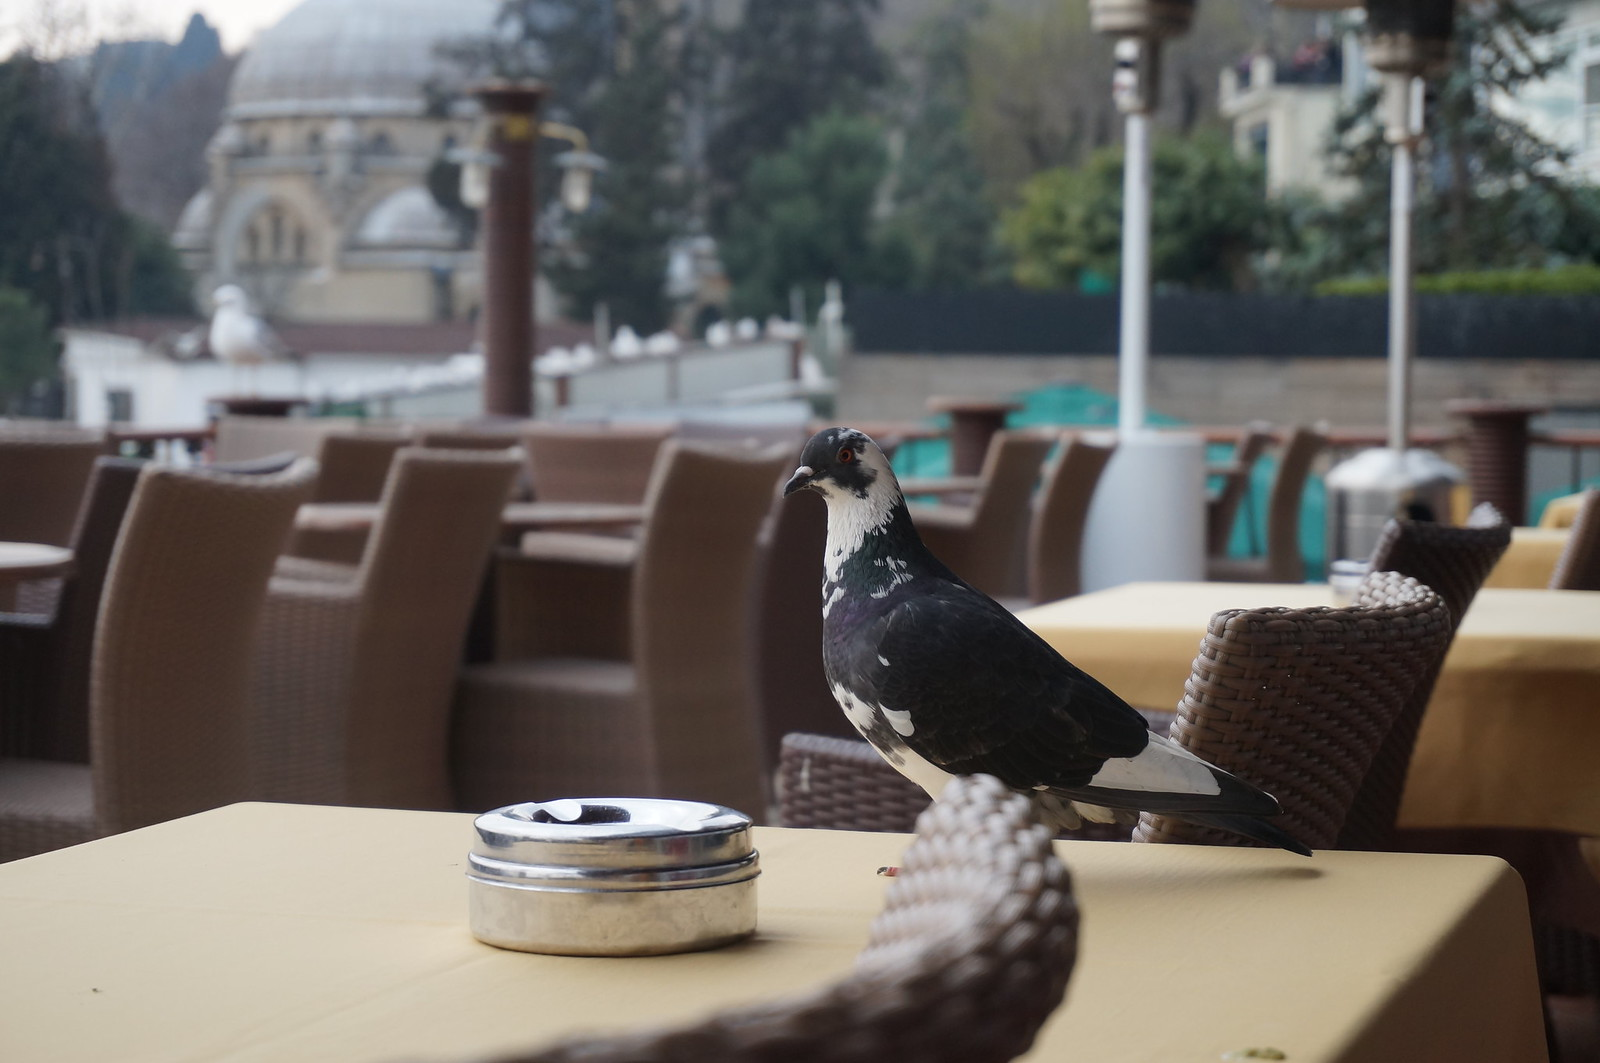 Pigeon Next to Ashtray